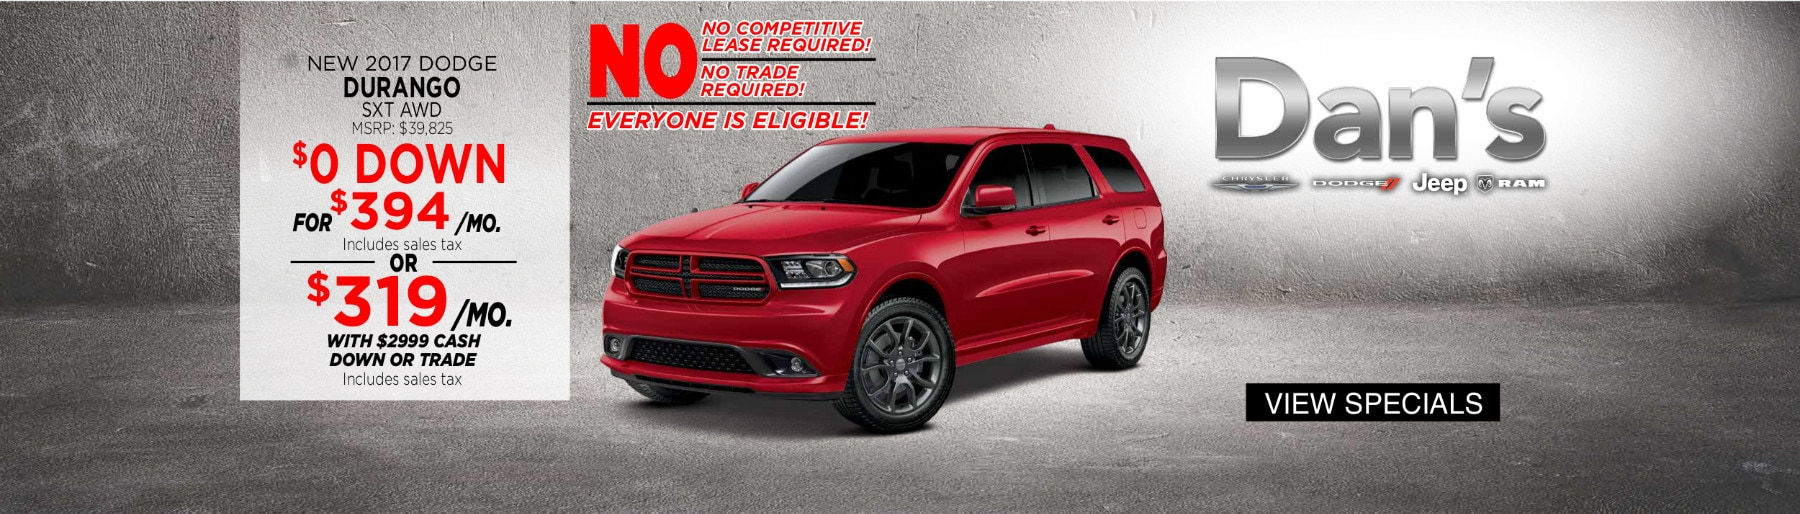 Dodge Durango SXT Special Deal in Westborough, MA